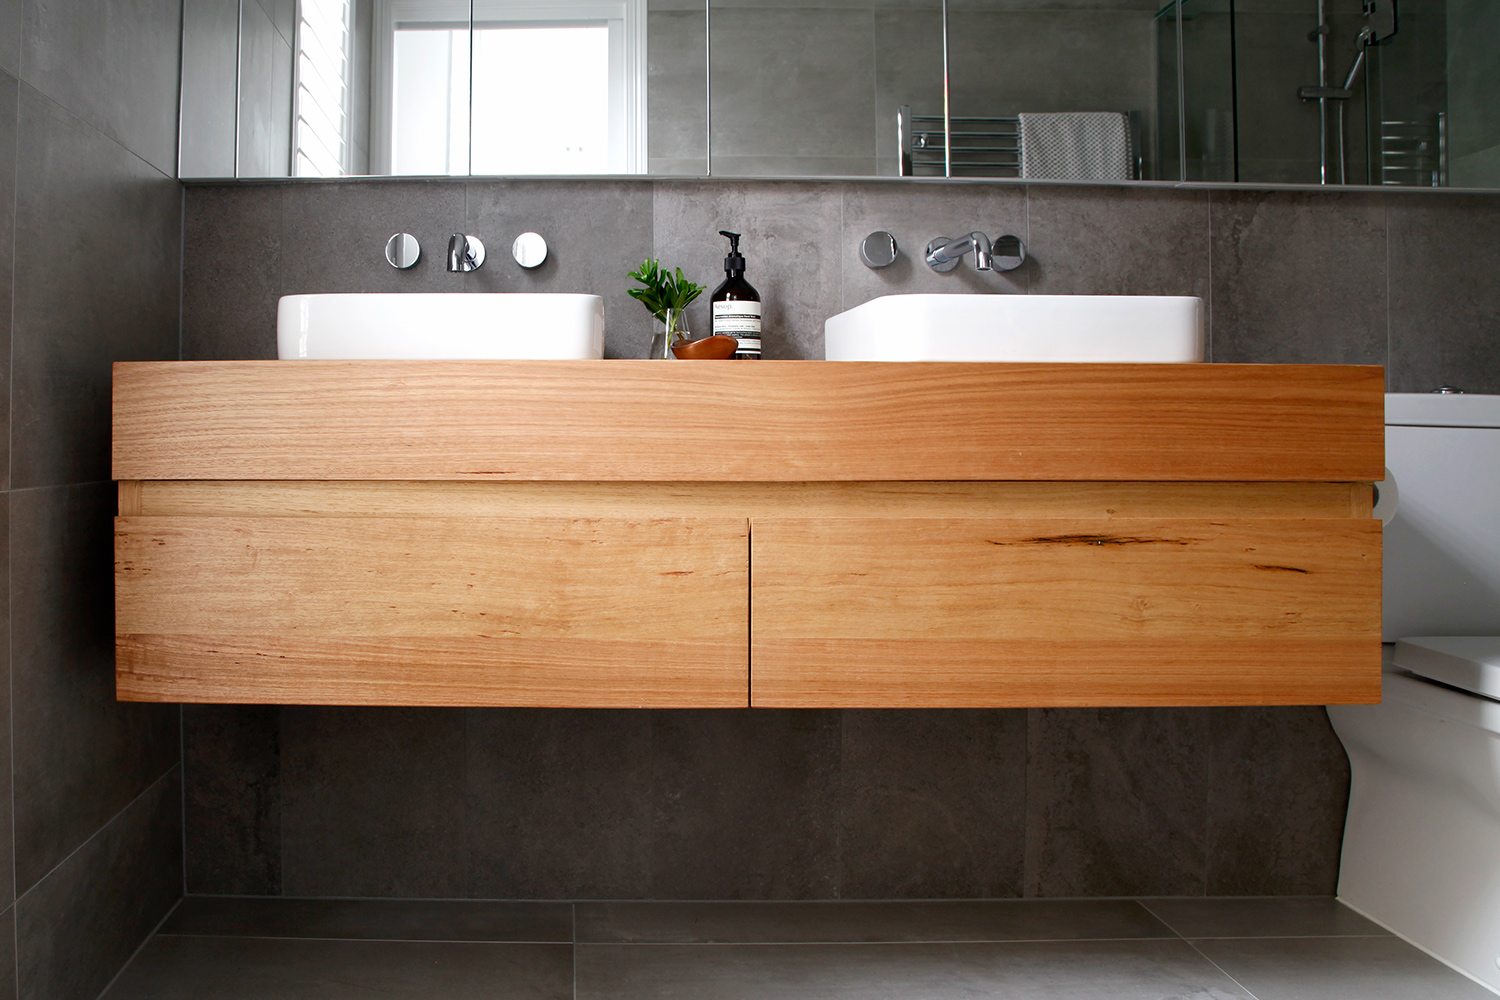 Kitchen Taps Brisbane Why Timber Vanities Can Cope With Your Wet Bathroom The